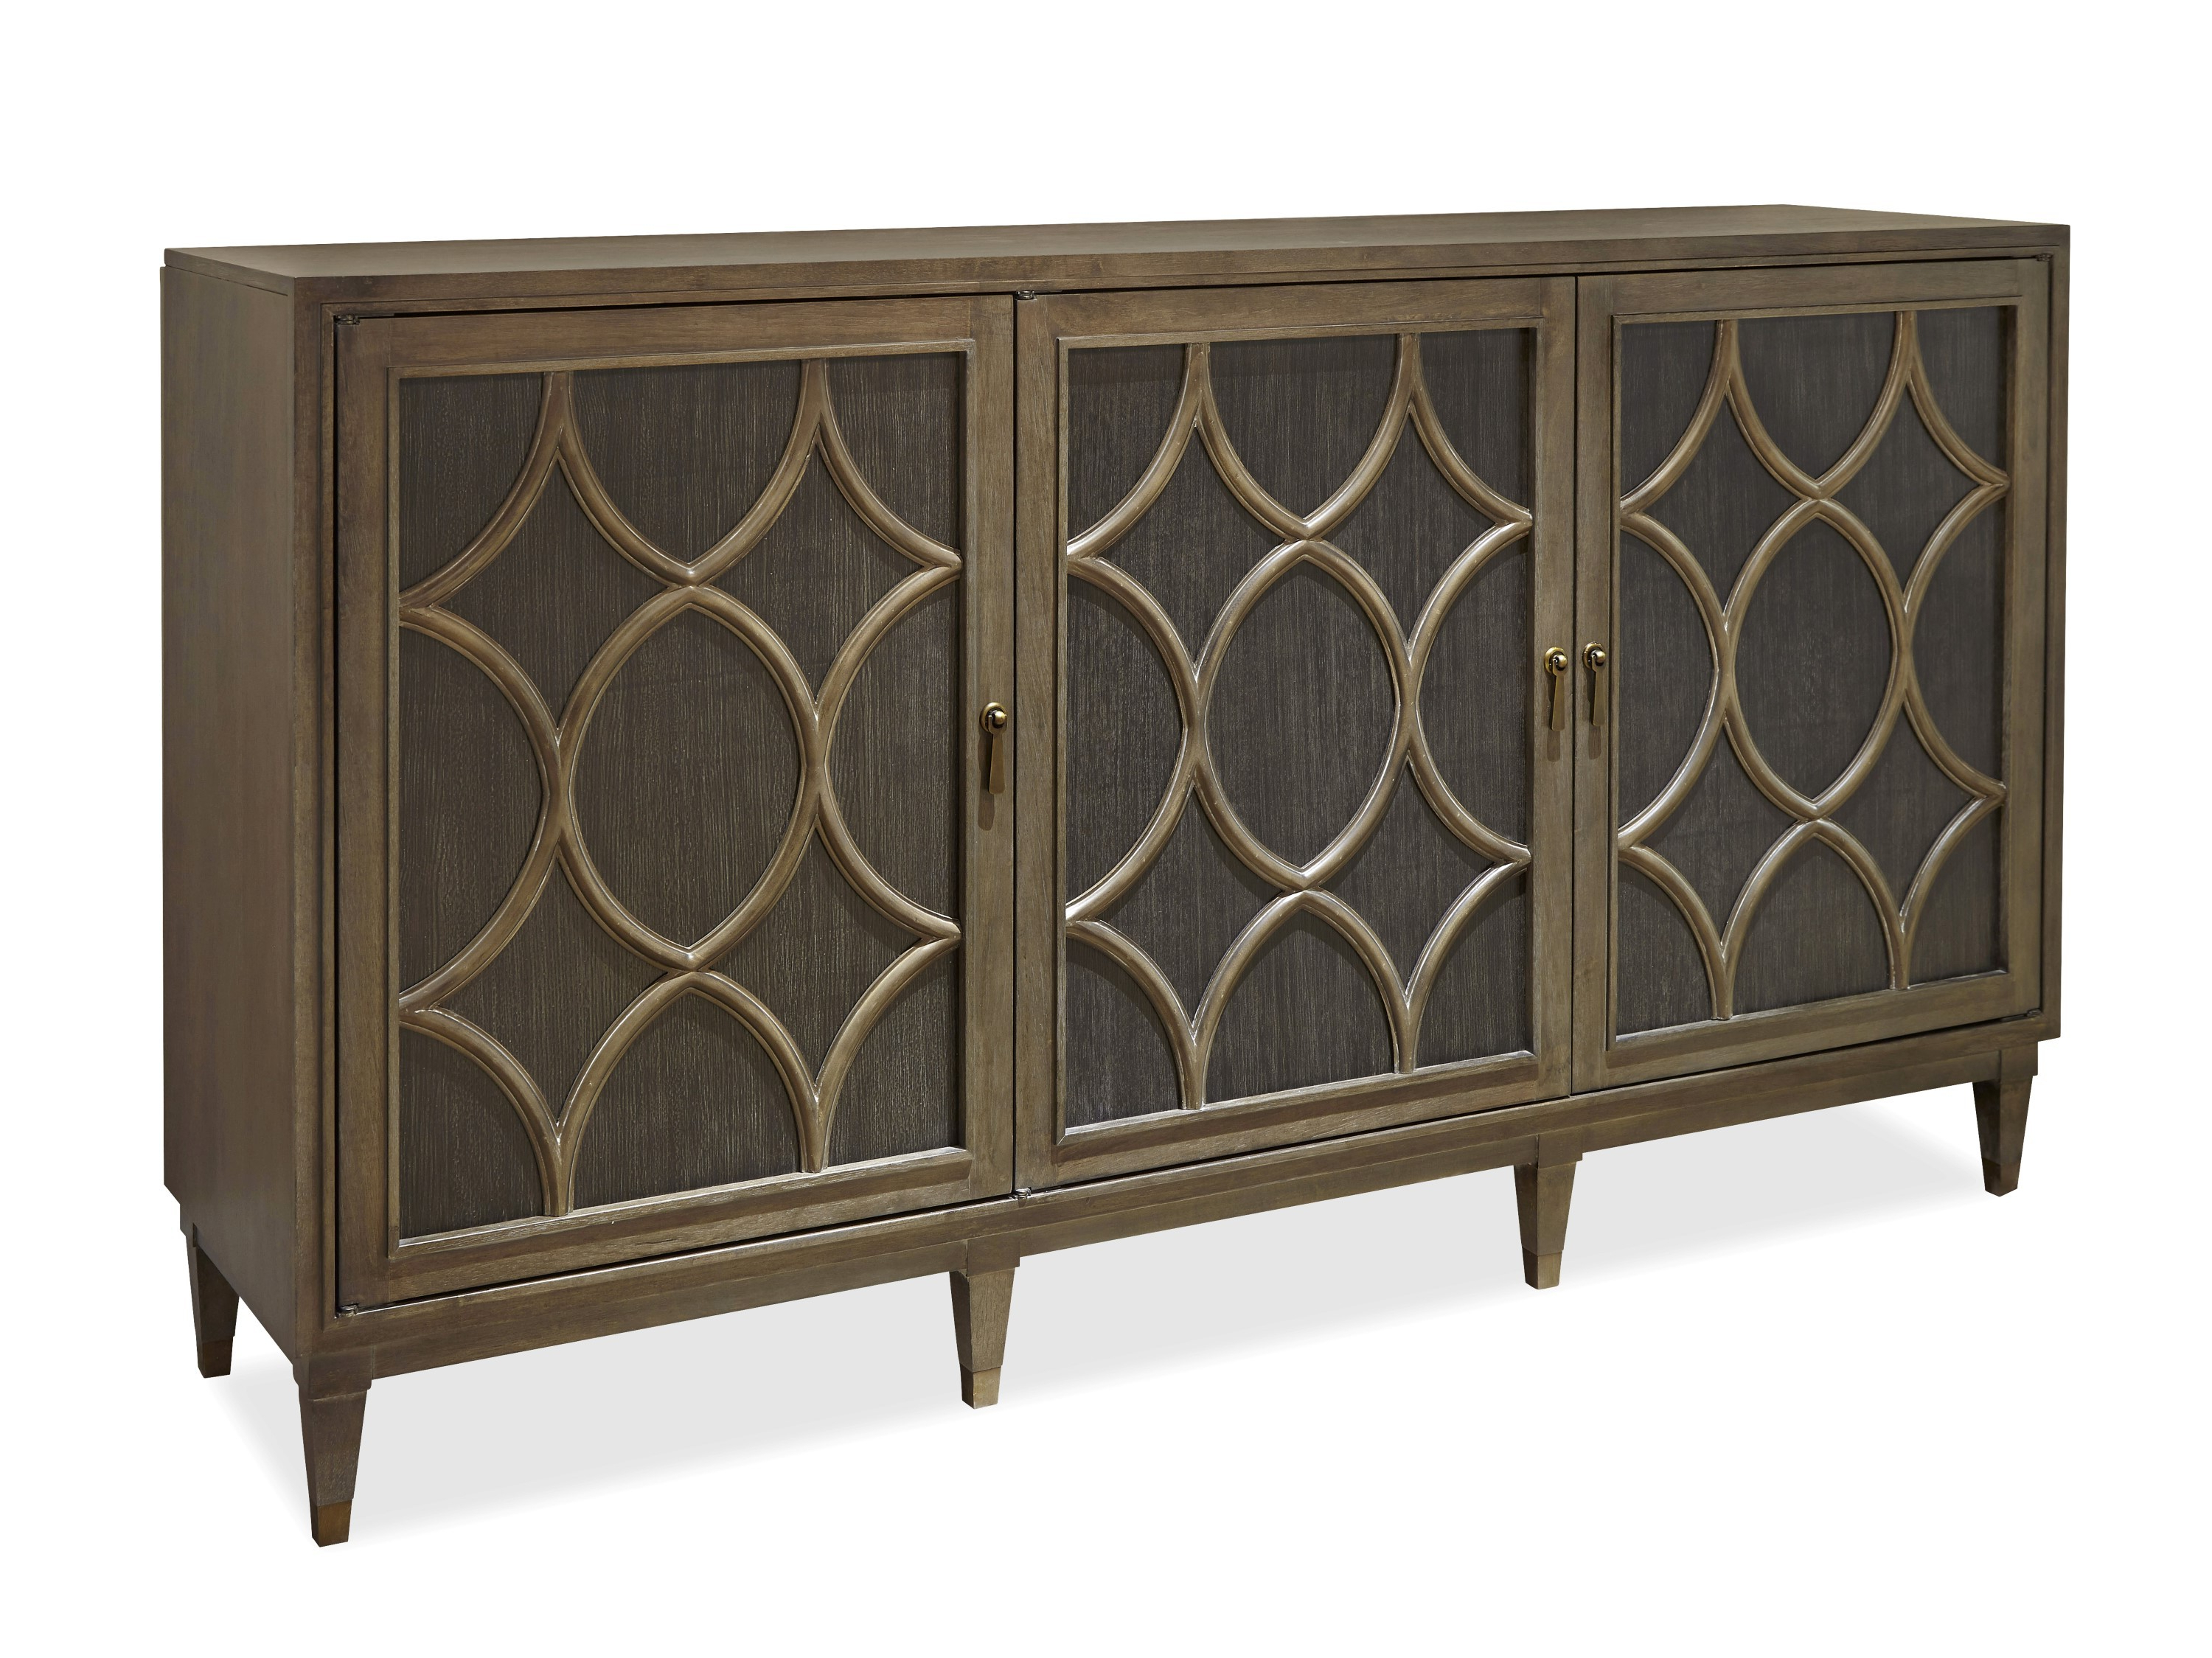 Sideboard With Regard To Pineville Dining Sideboards (View 12 of 20)